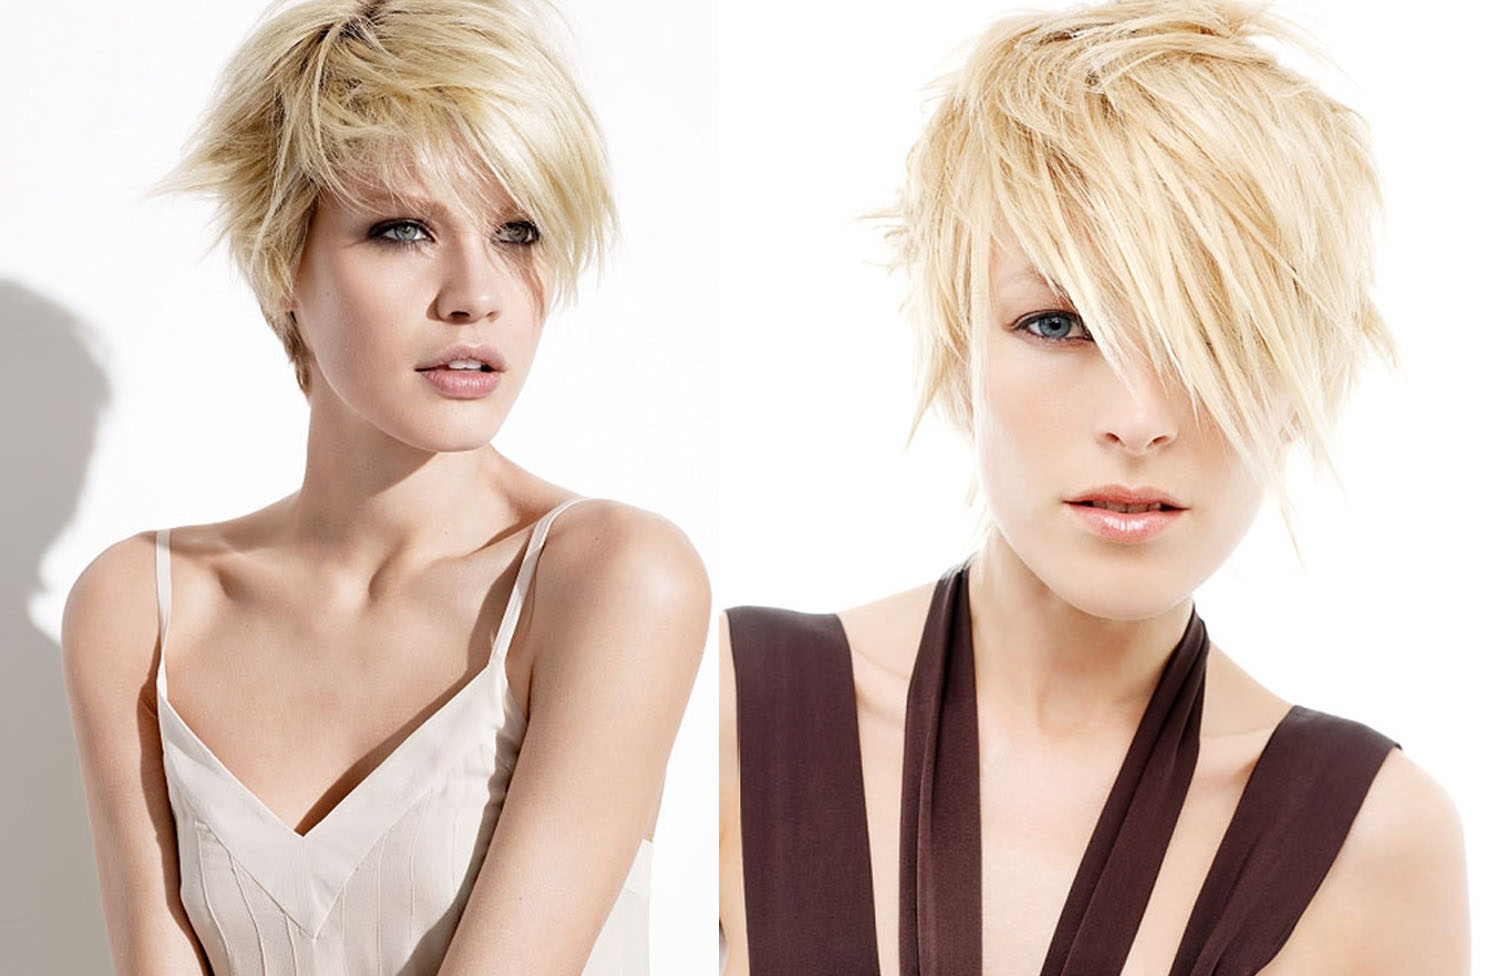 Blonde Hair Styles Latest Hair Trends 05 The Hairstyle 9